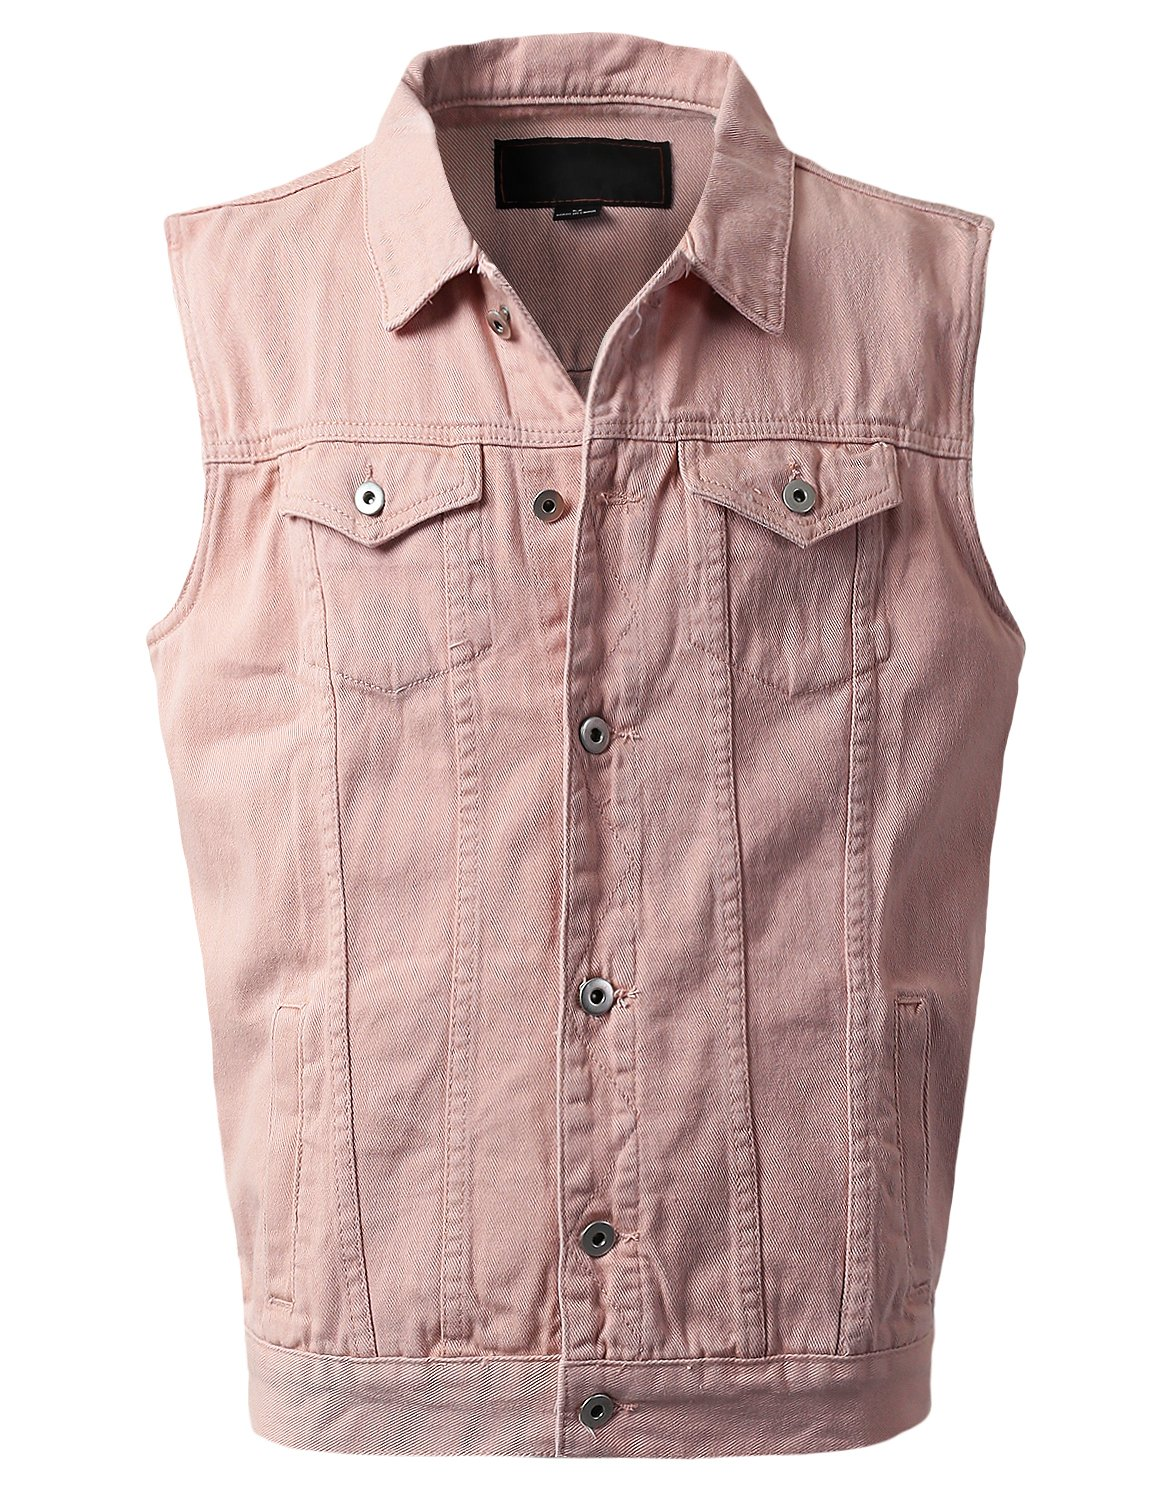 URBANCREWS Mens Hipster Hip Hop Fashion Denim Vest Jacket Pink, M by URBANCREWS